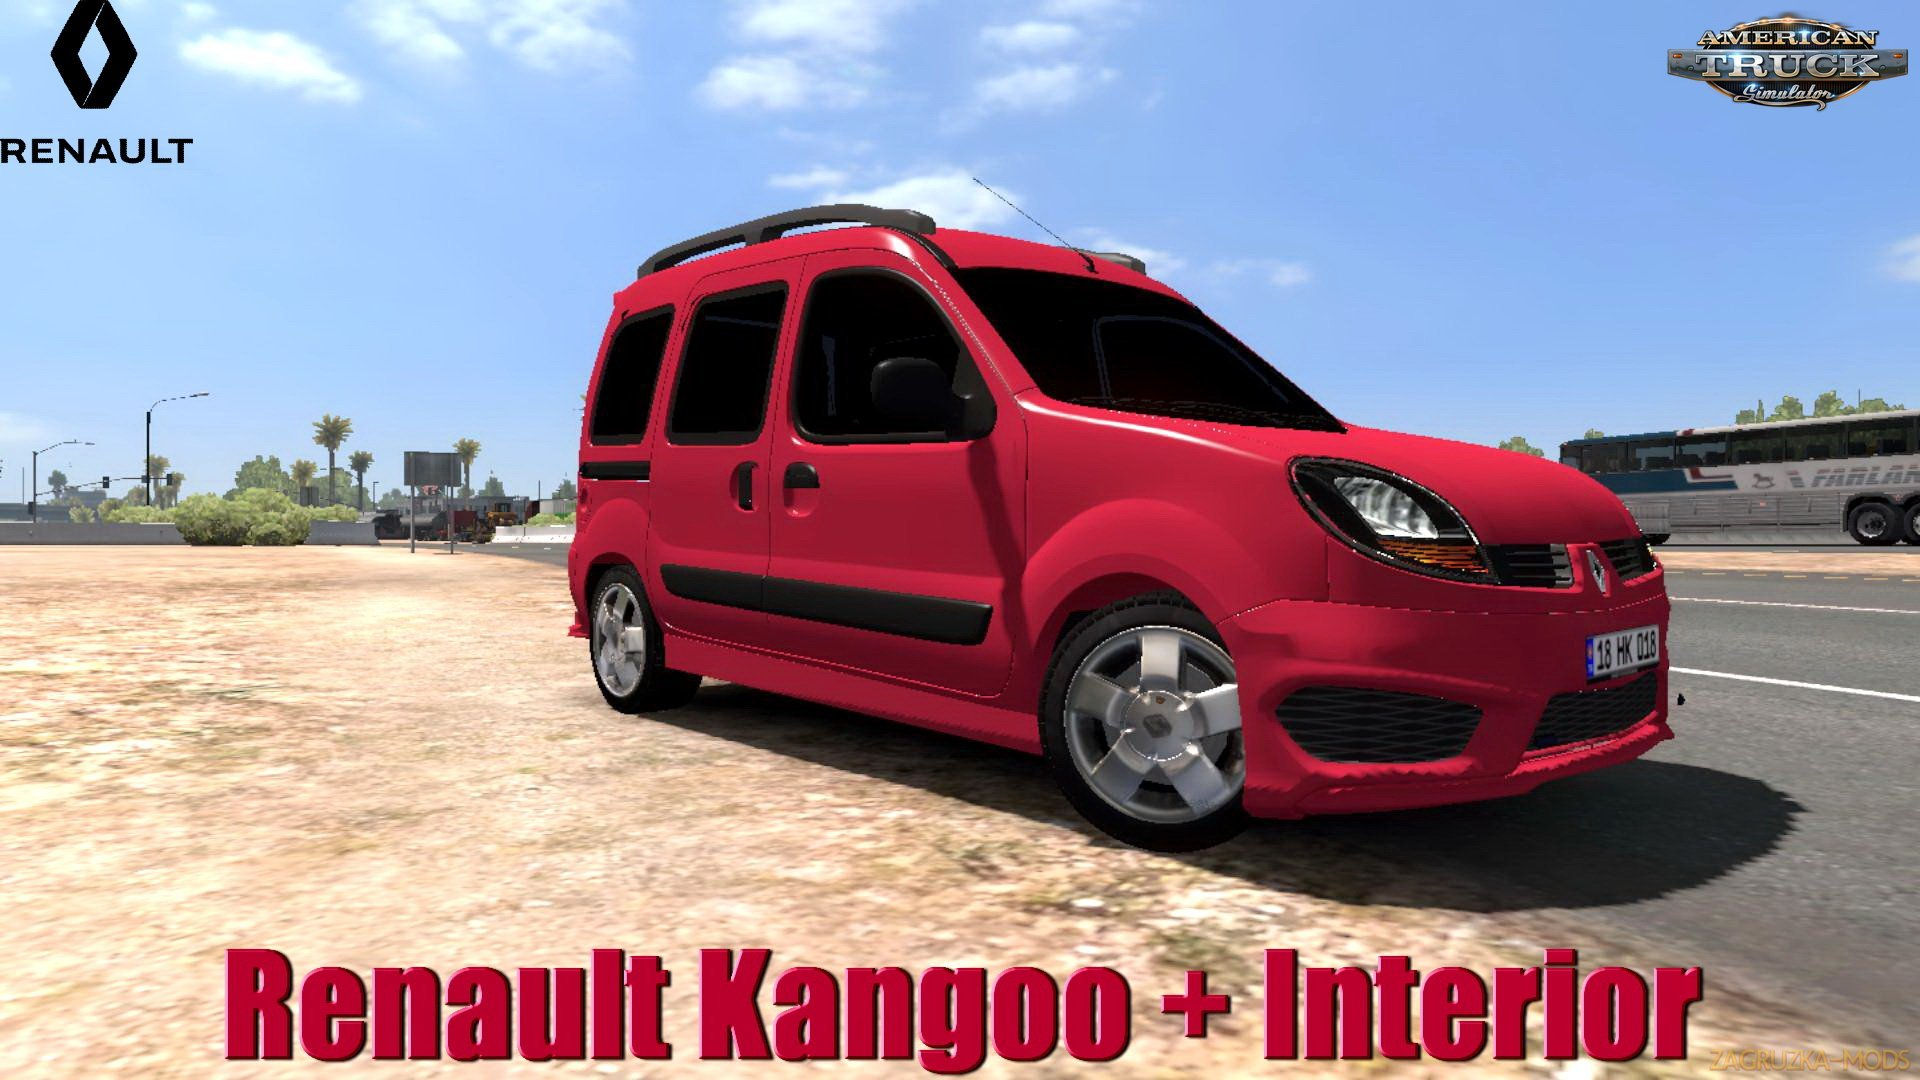 Renault Kangoo + Interior v1.0 (1.31.x) for ATS